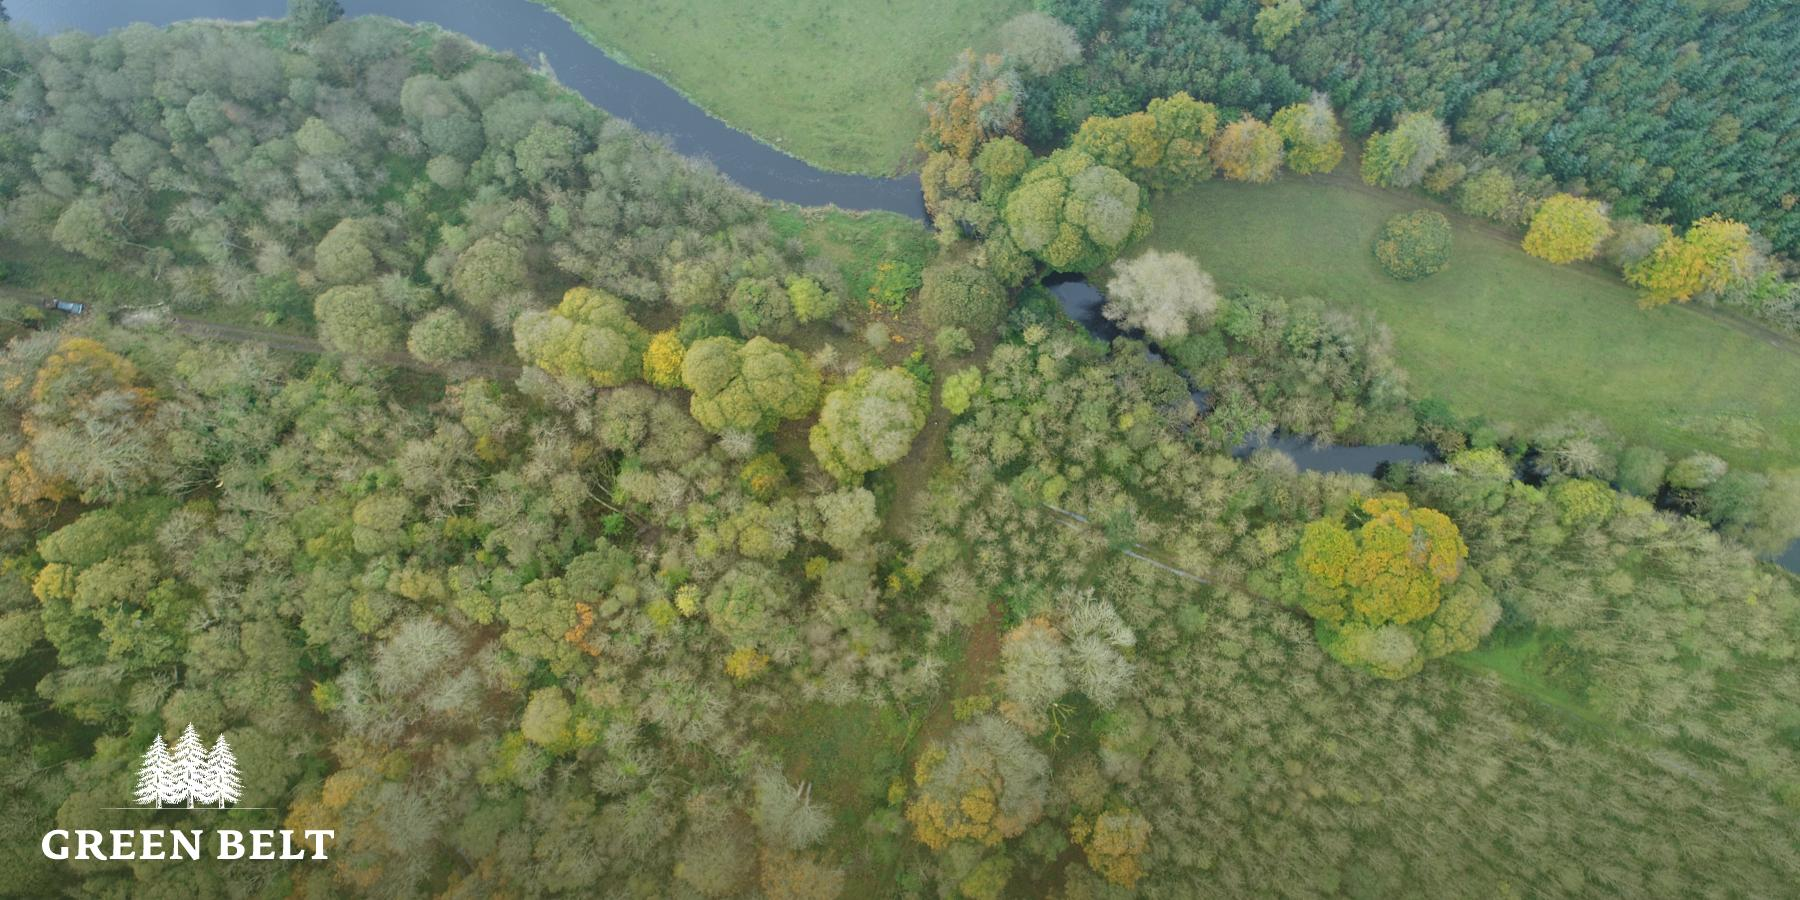 Carbon Capture in Irish forests